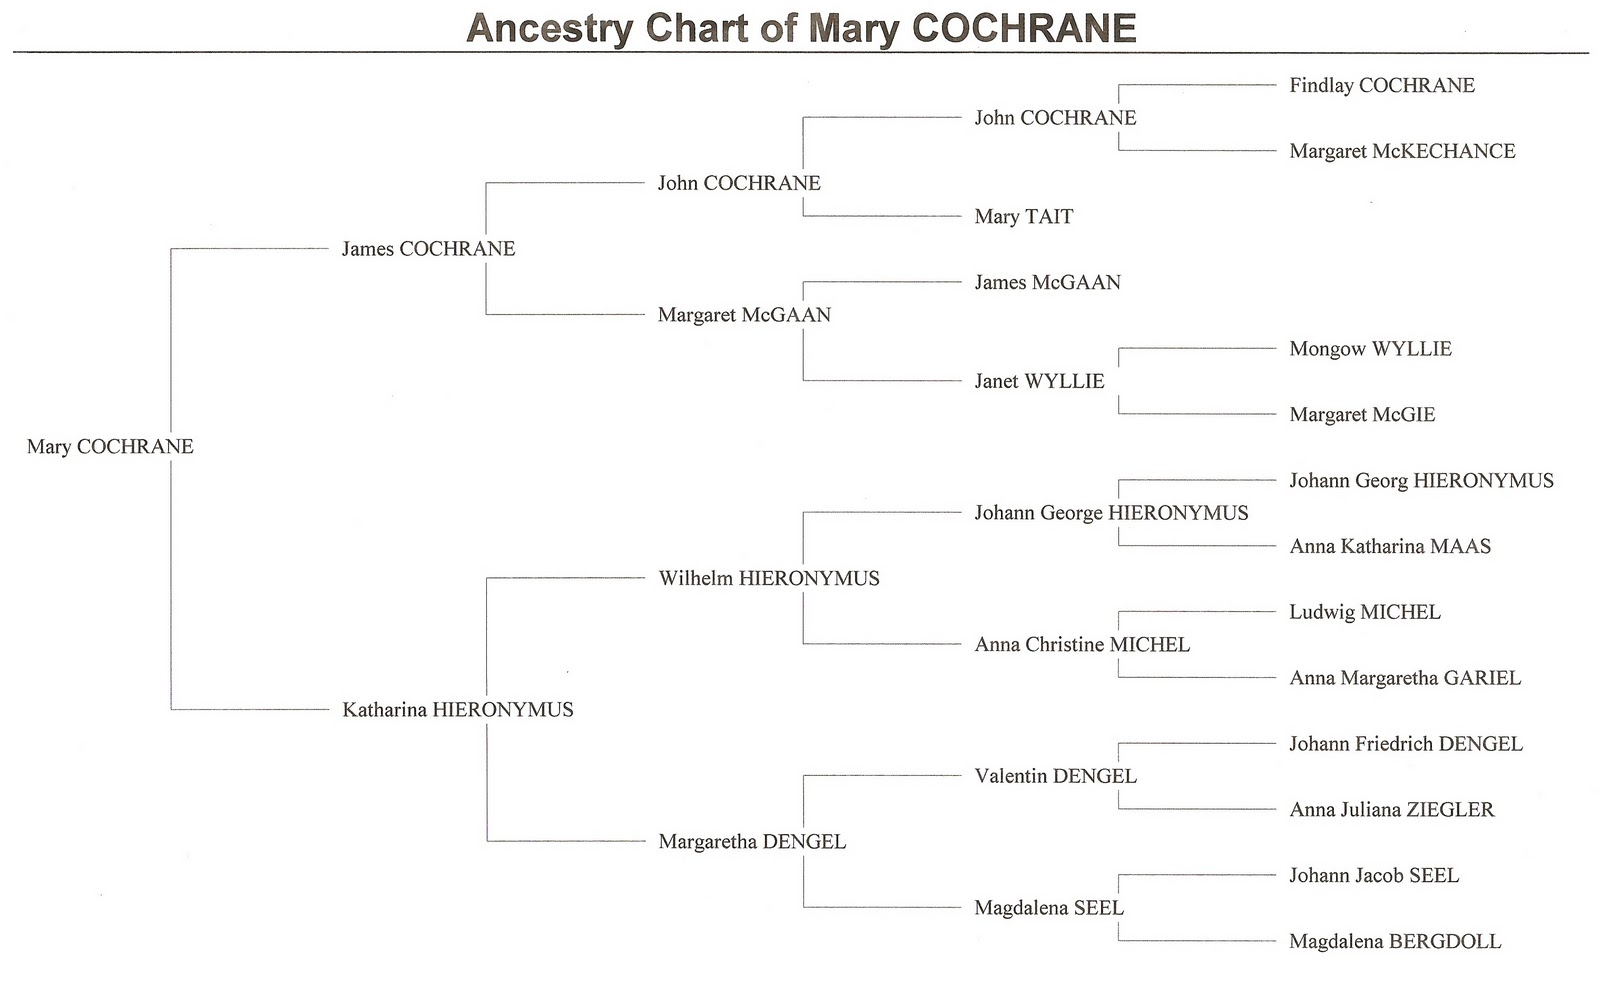 Gray and forrest genealogy cochrane ancestry chart